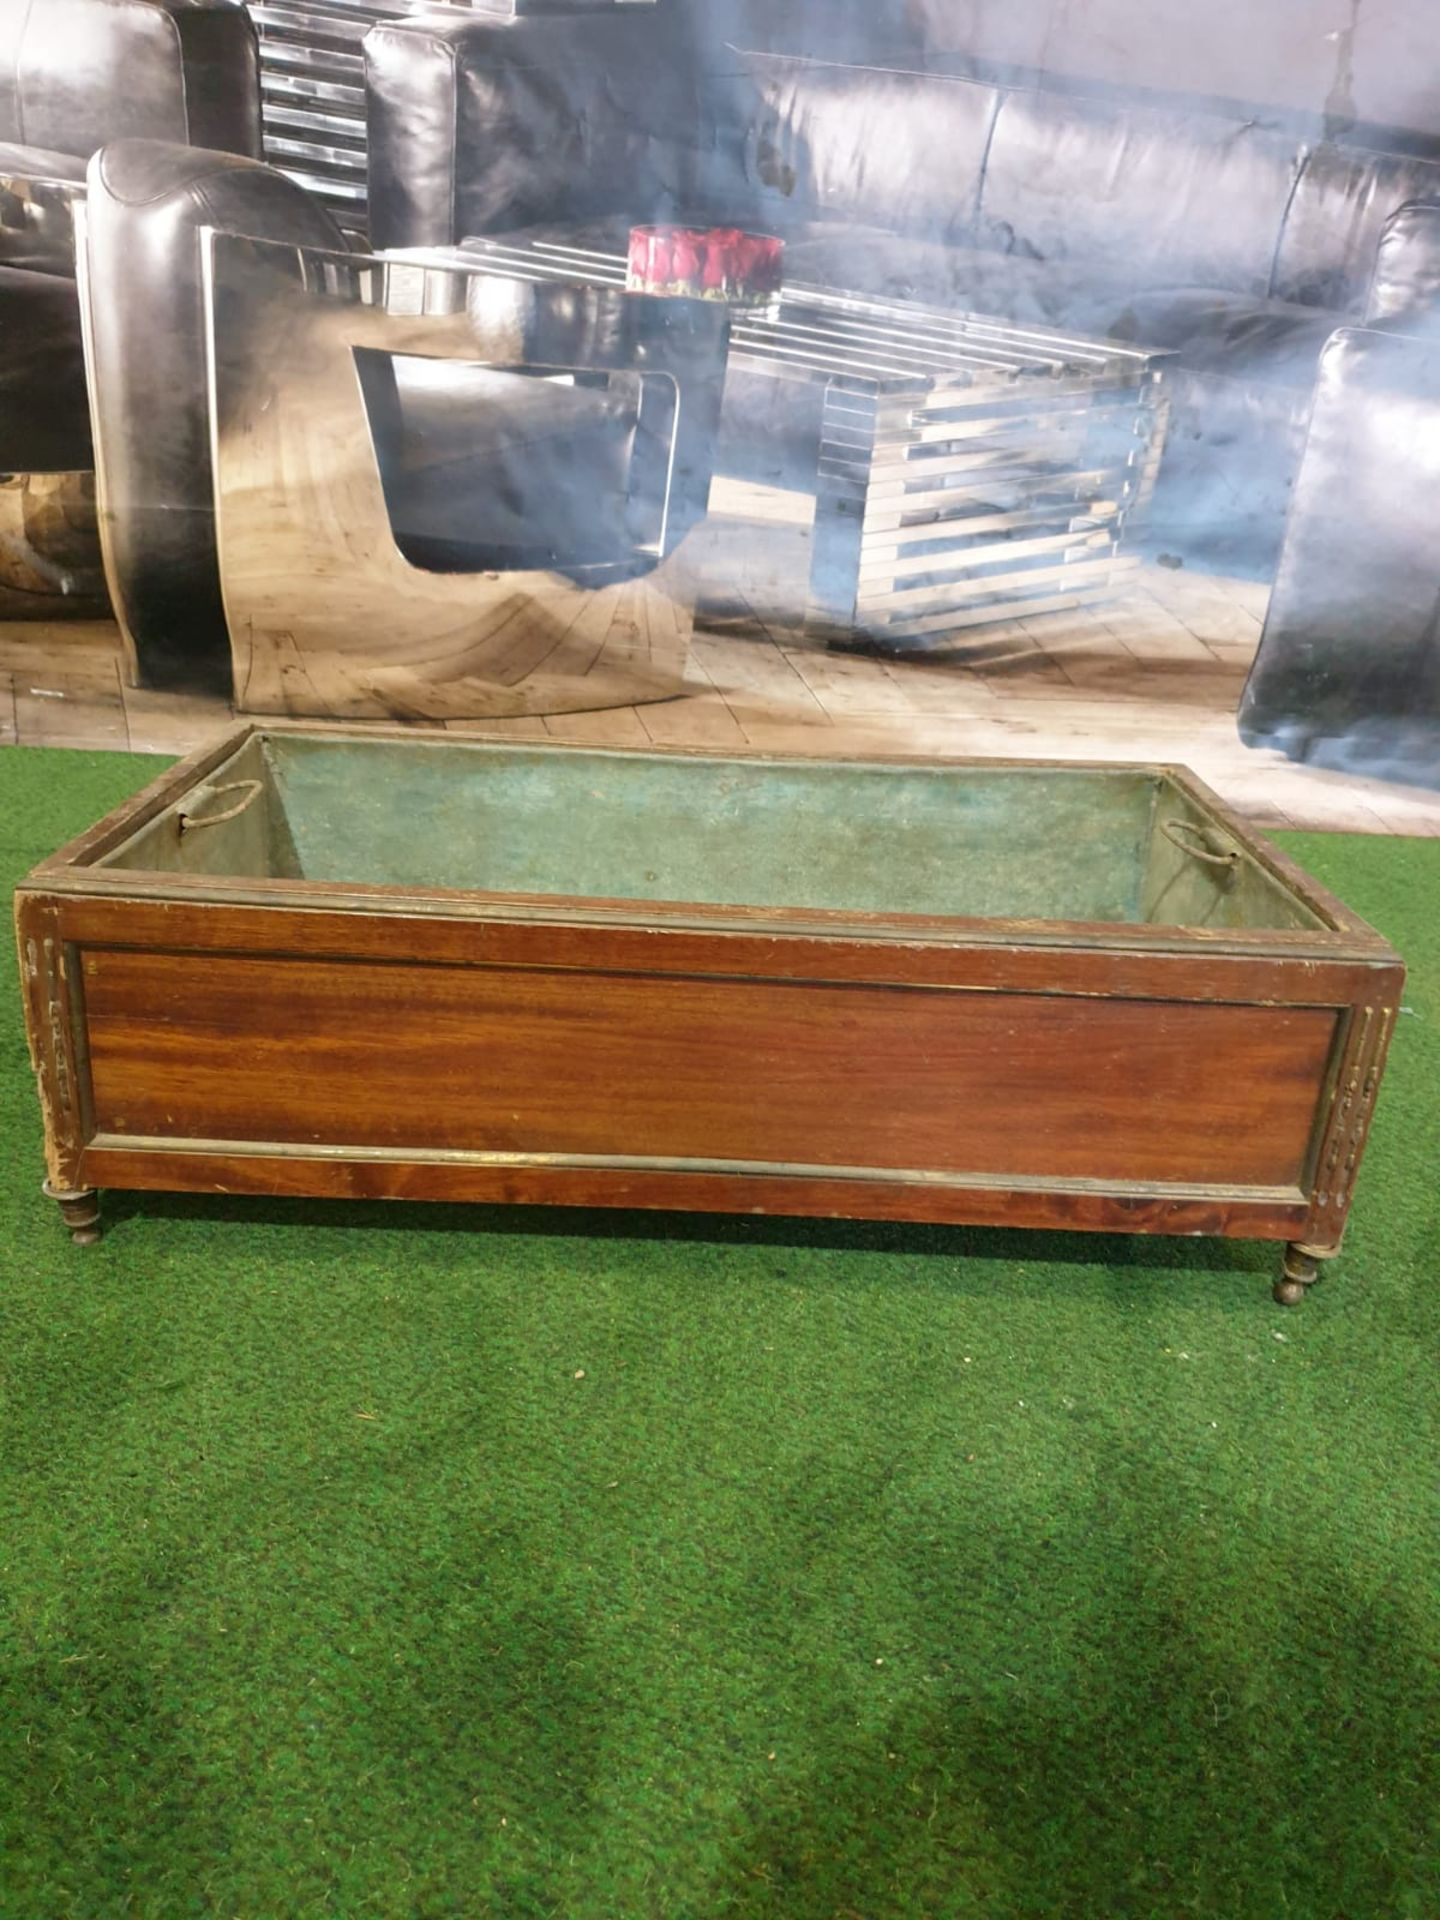 A Regency style Inlaid Mahogany Planter trough with original metal insert on shaped bun feet 65 x 35 - Image 2 of 4